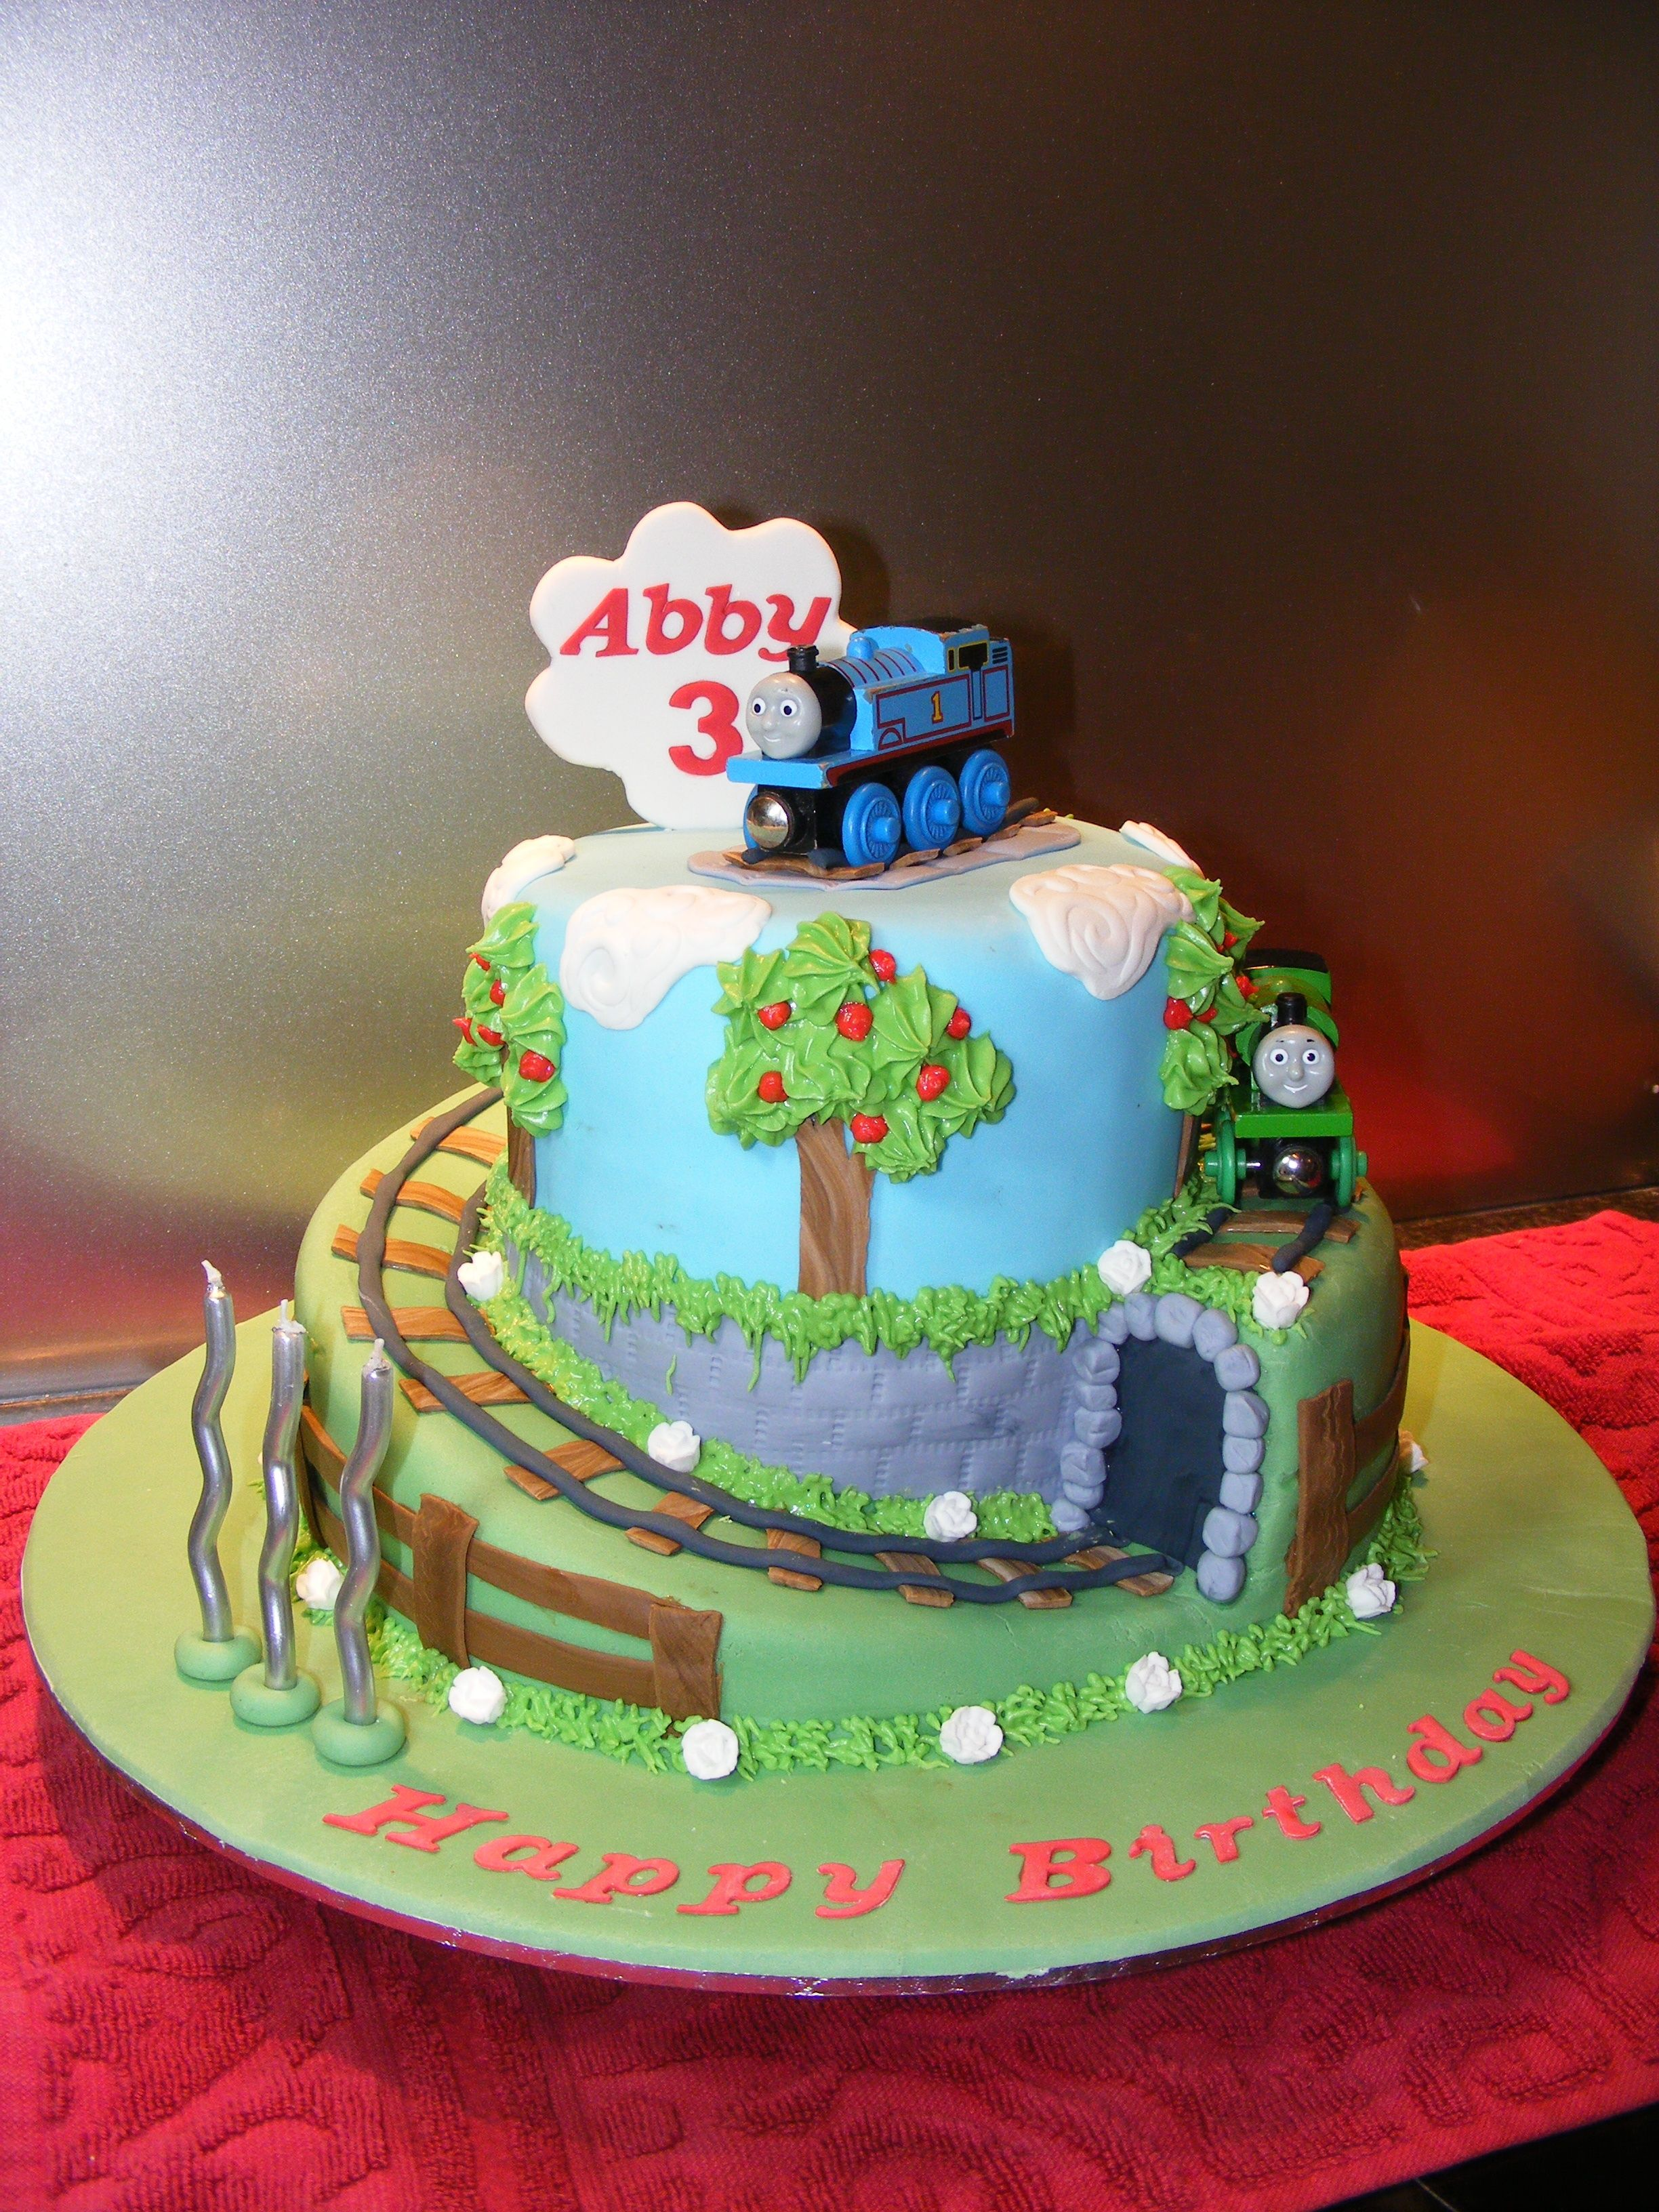 Cake Decorations Thomas The Tank Engine : Thomas the Tank Engine cake Party Ideas Pinterest ...